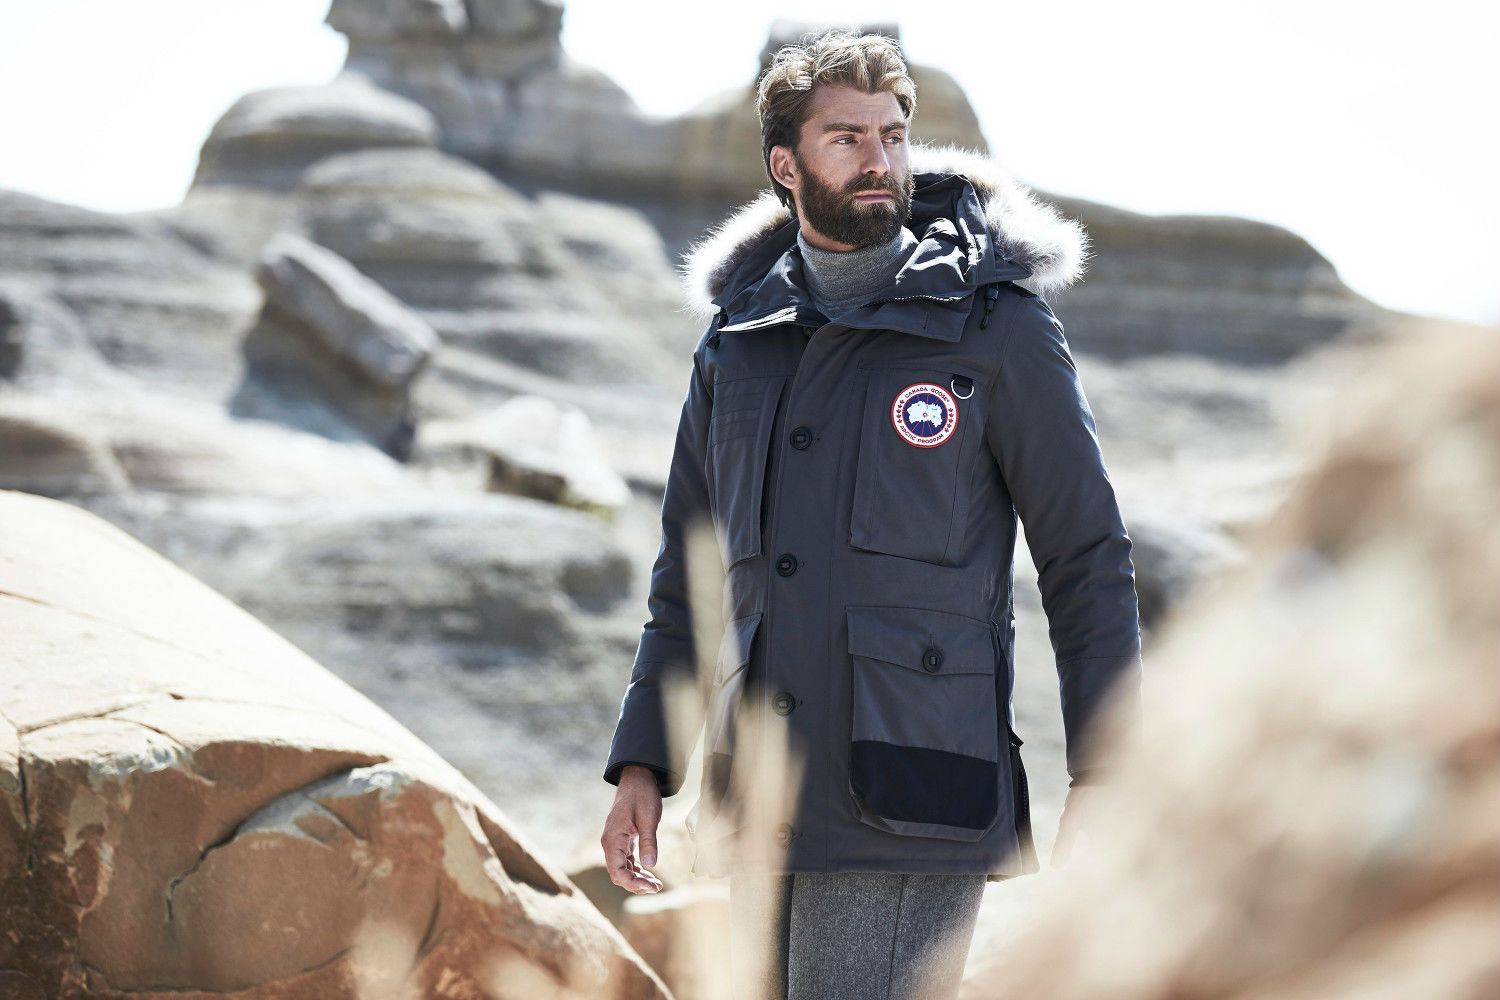 best dry cleaners in london for canada goose jackets ldnfashion rh ldnfashion com